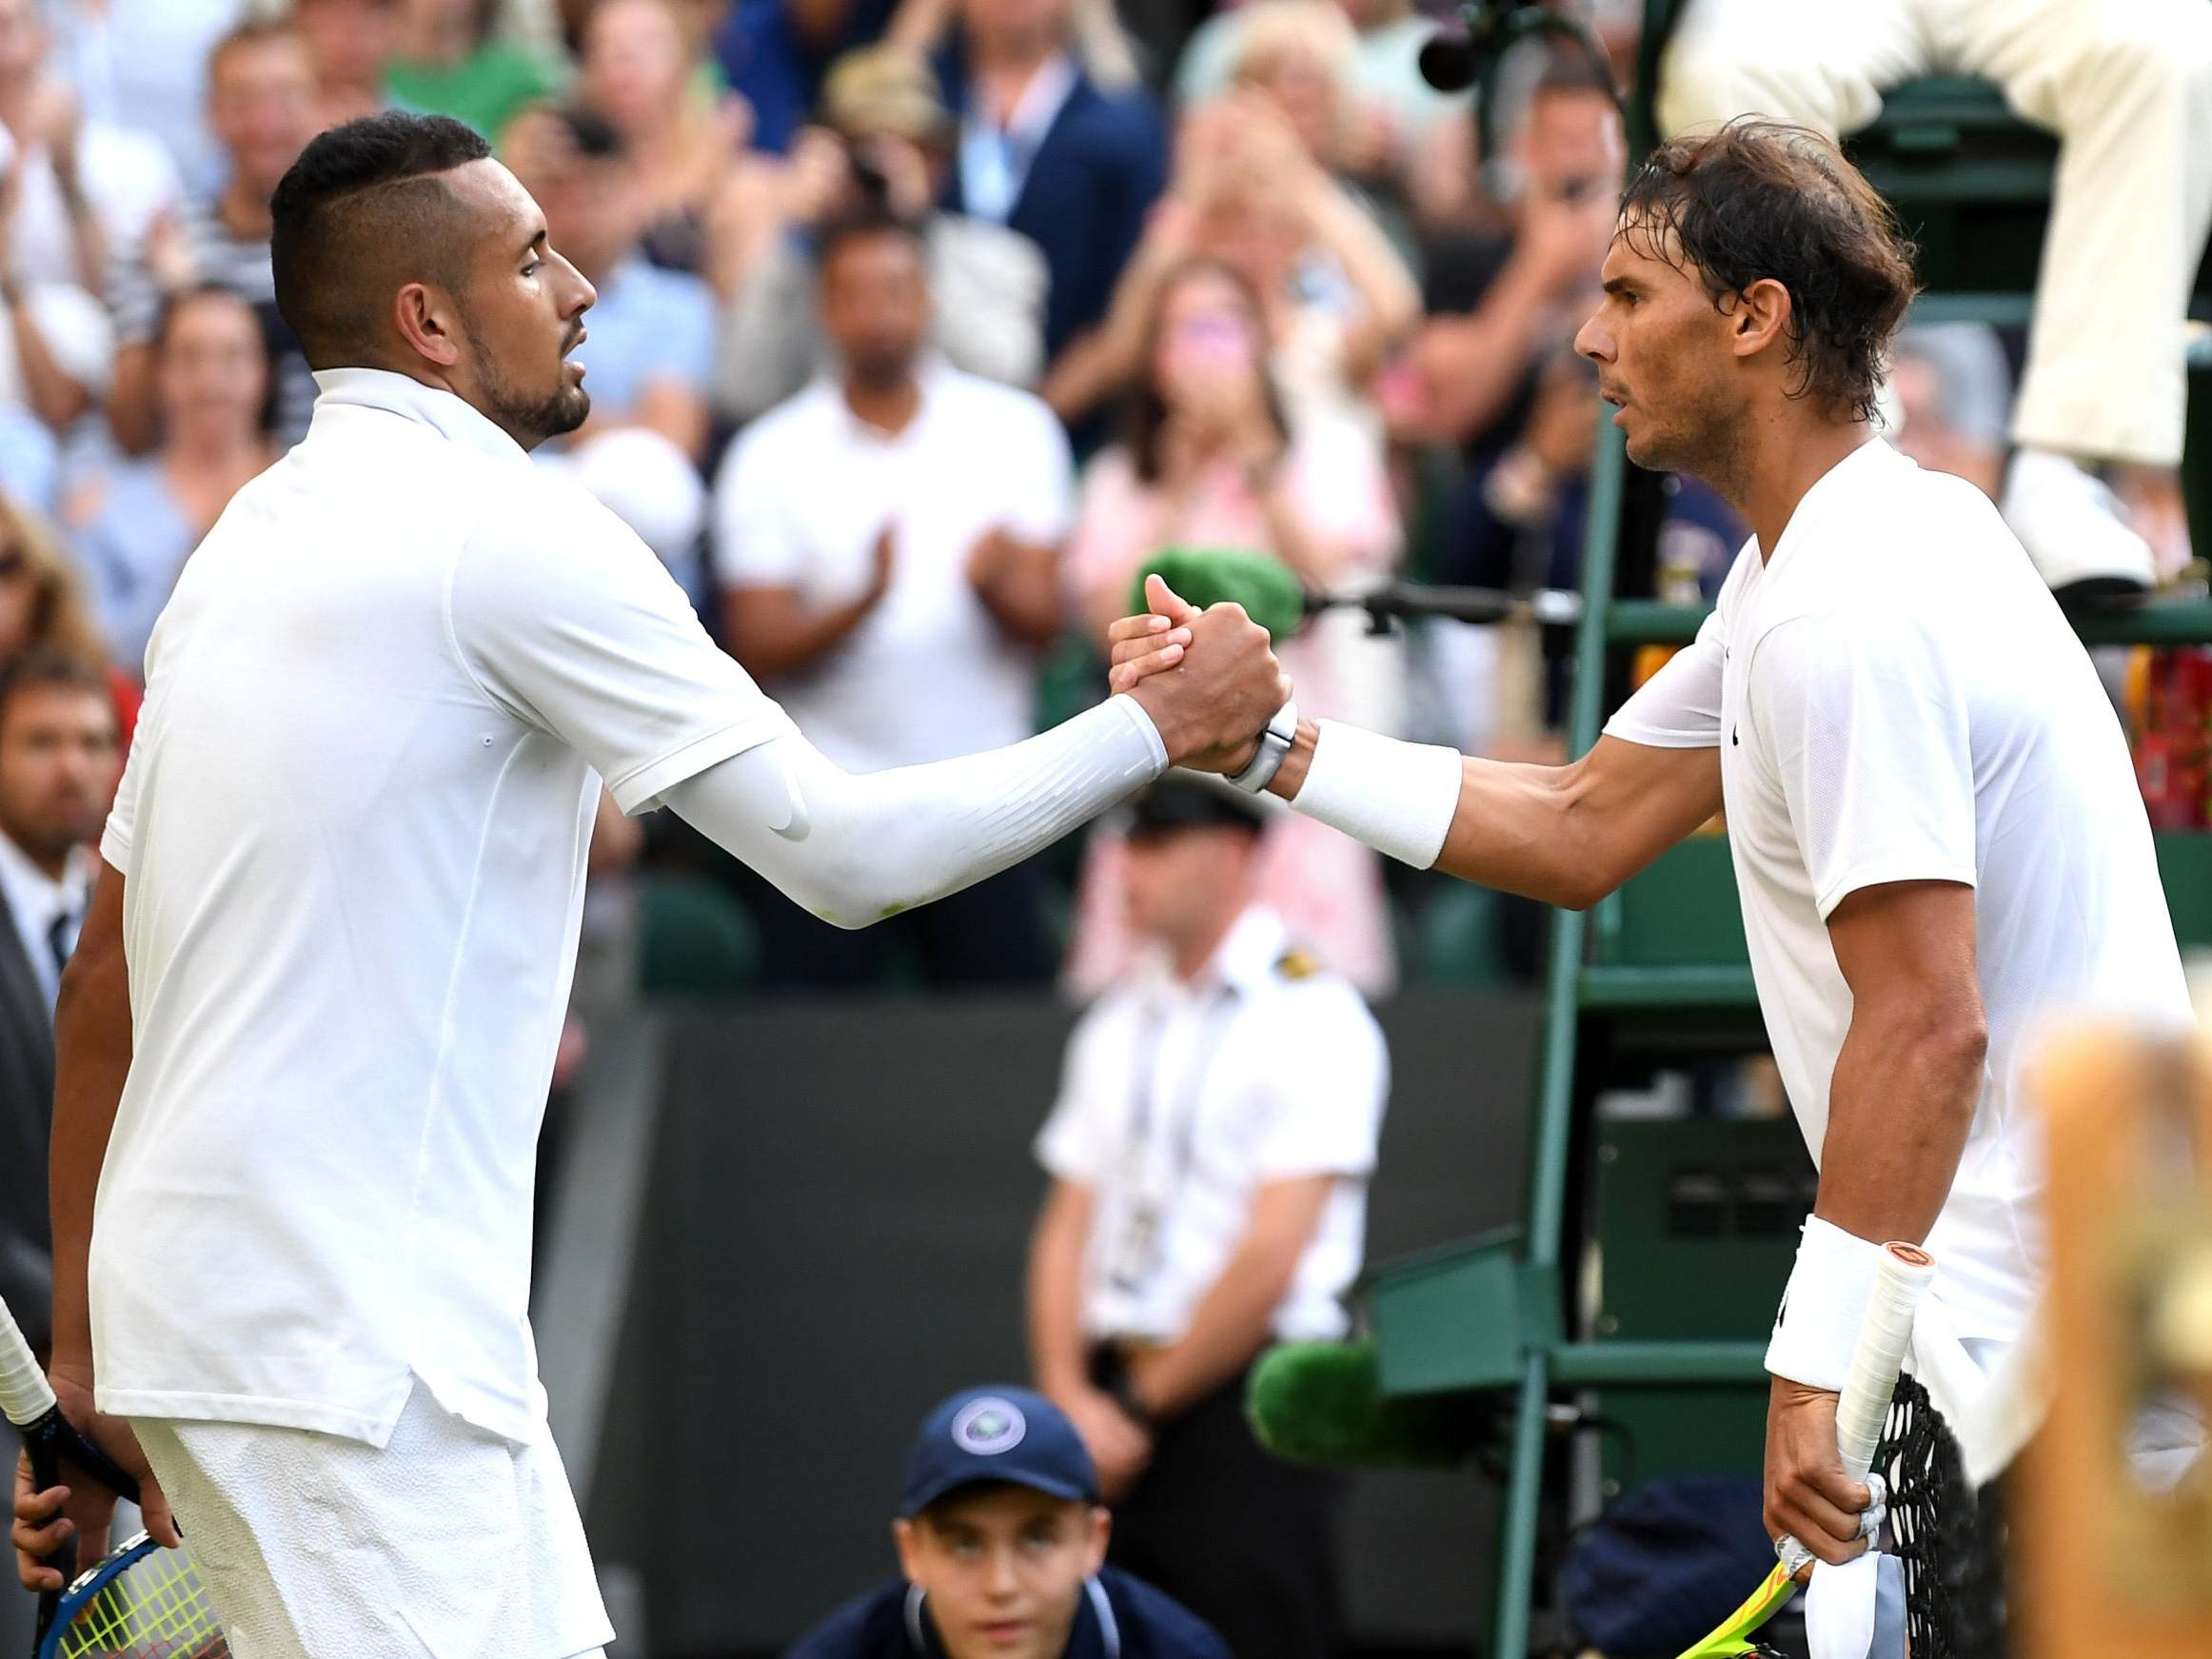 Wimbledon 2019: Why Rafael Nadal's fiery clash with Nick Kyrgios was just what tennis needs